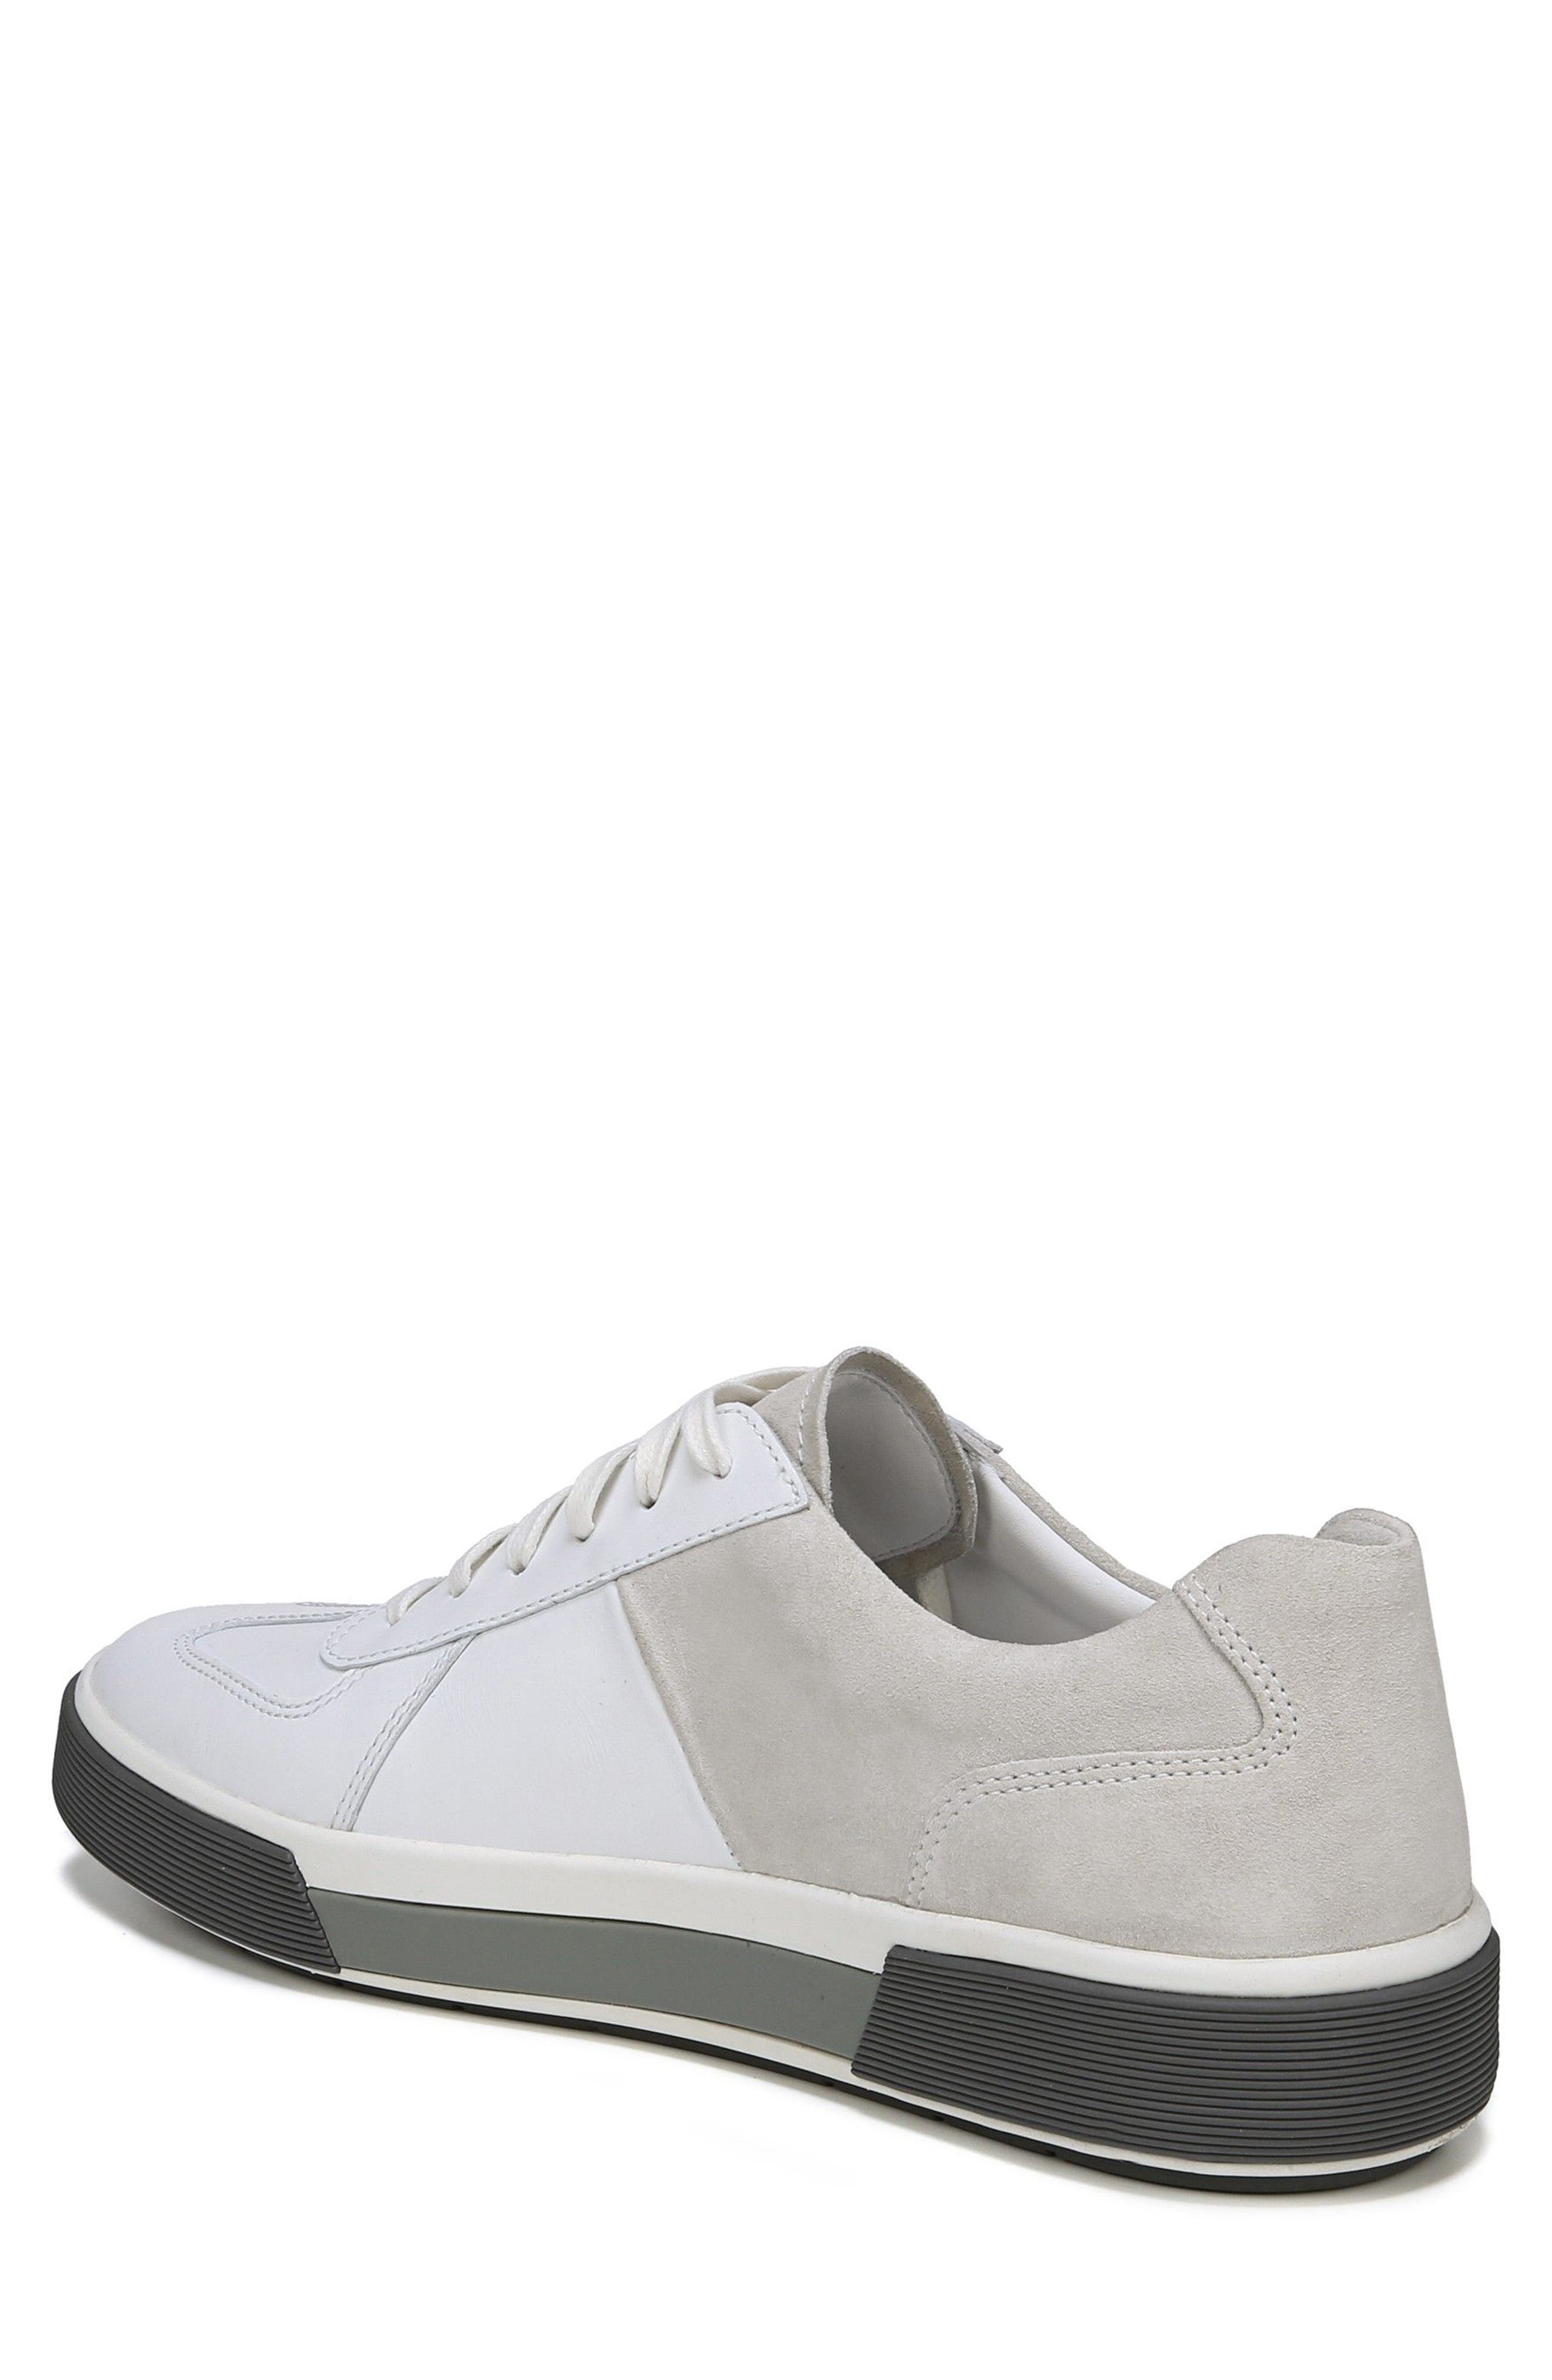 Rogue Low Top Sneaker,                             Alternate thumbnail 2, color,                             White/ Horchata